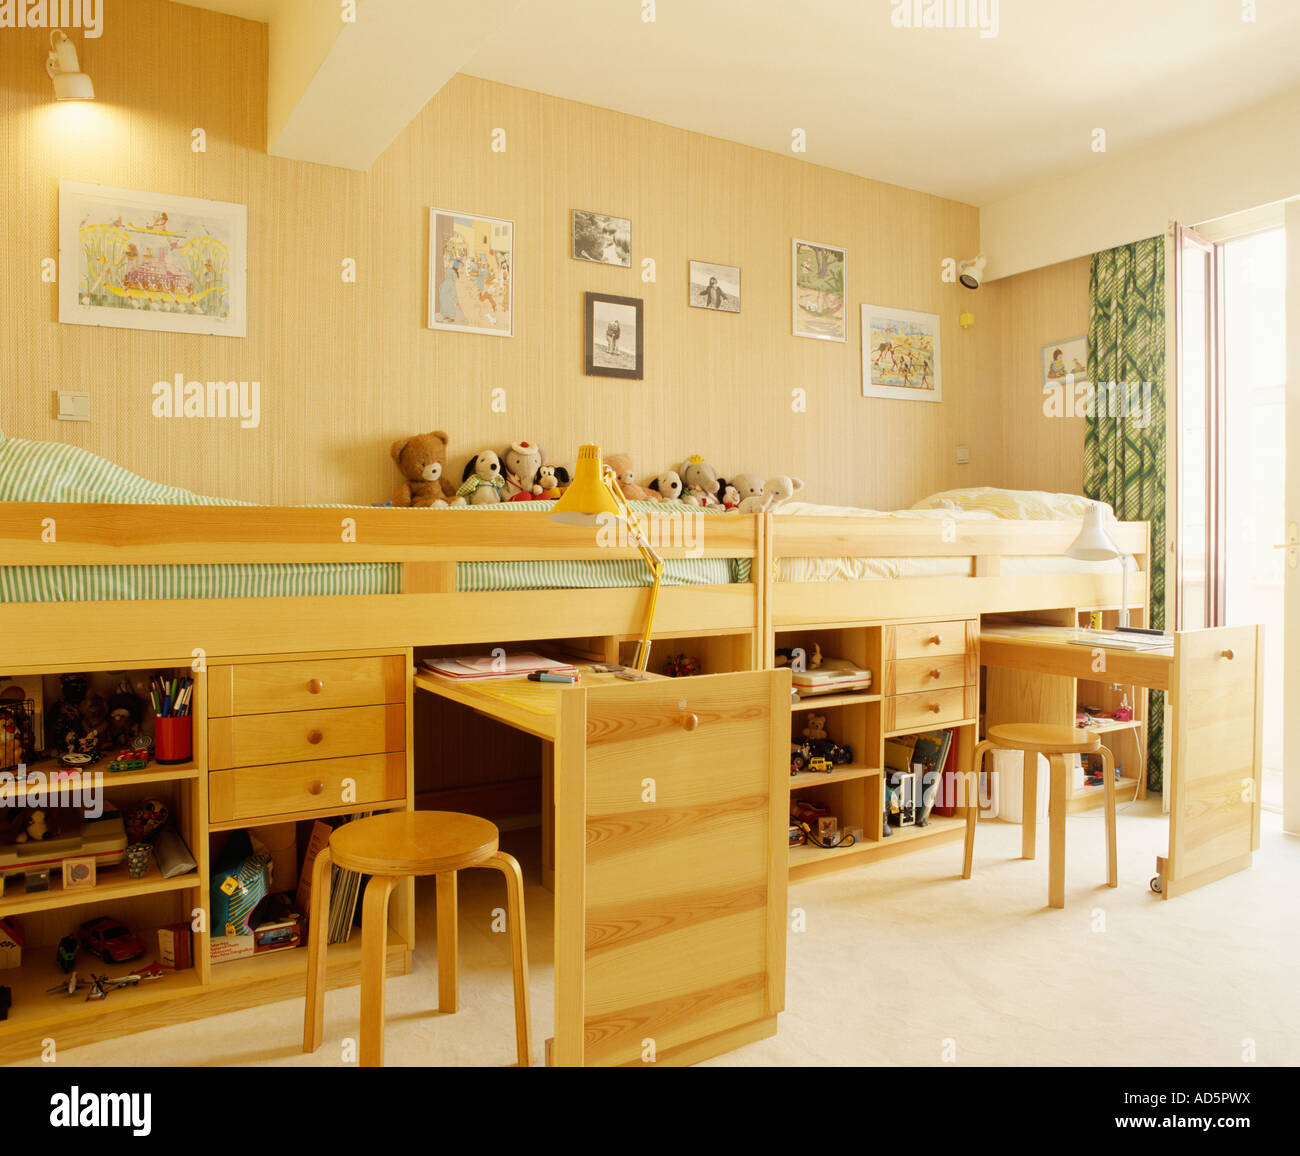 Picture of: Platform Beds With Pull Out Desks And Storage Below Stock Photo Alamy